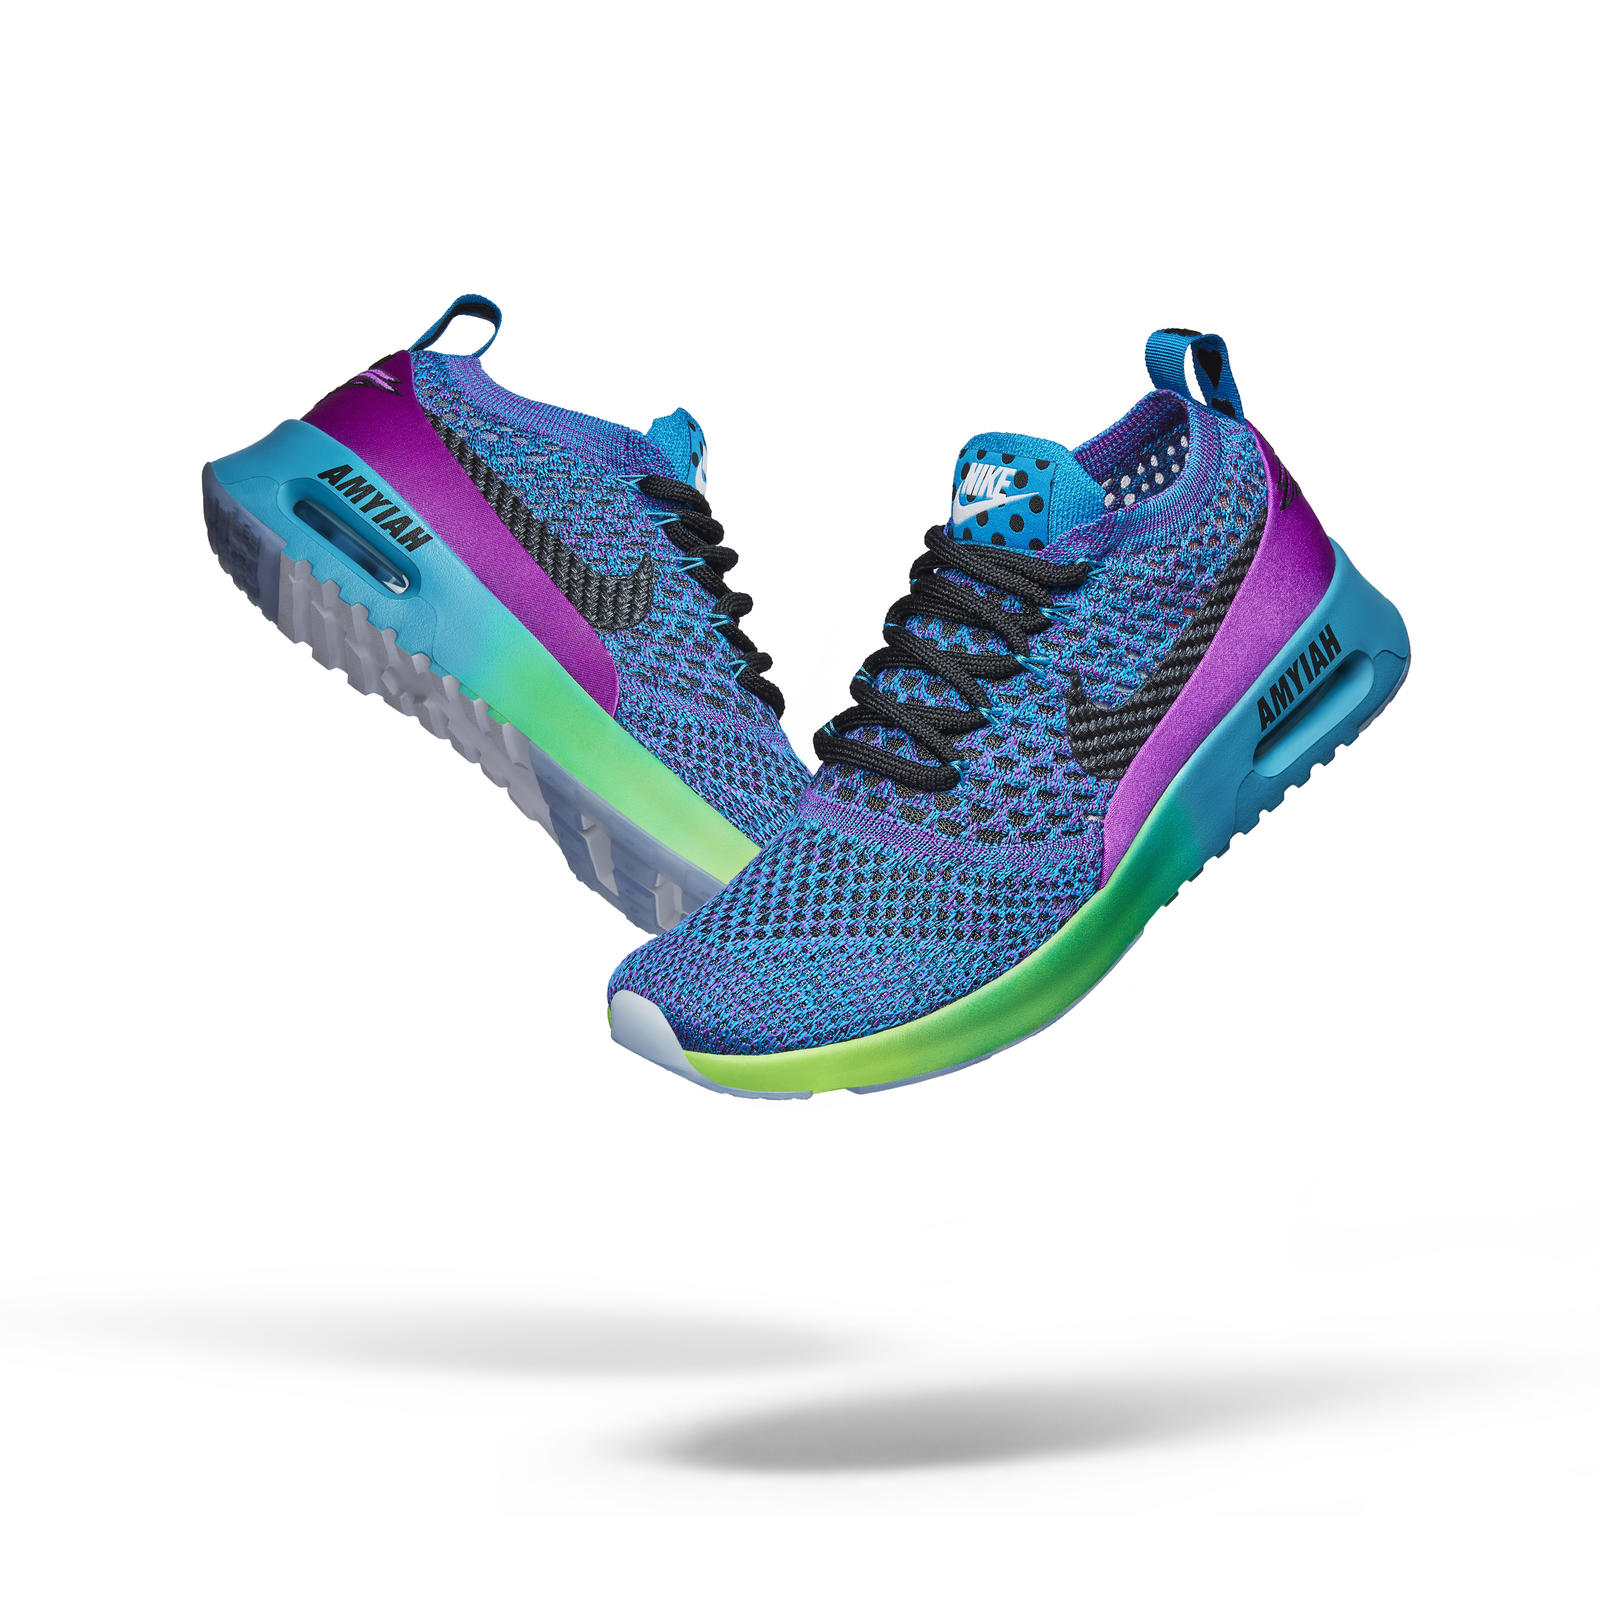 9dc62252b8e5e3 What the Doernbecher Freestyle Program Means to the Sneaker Community 16